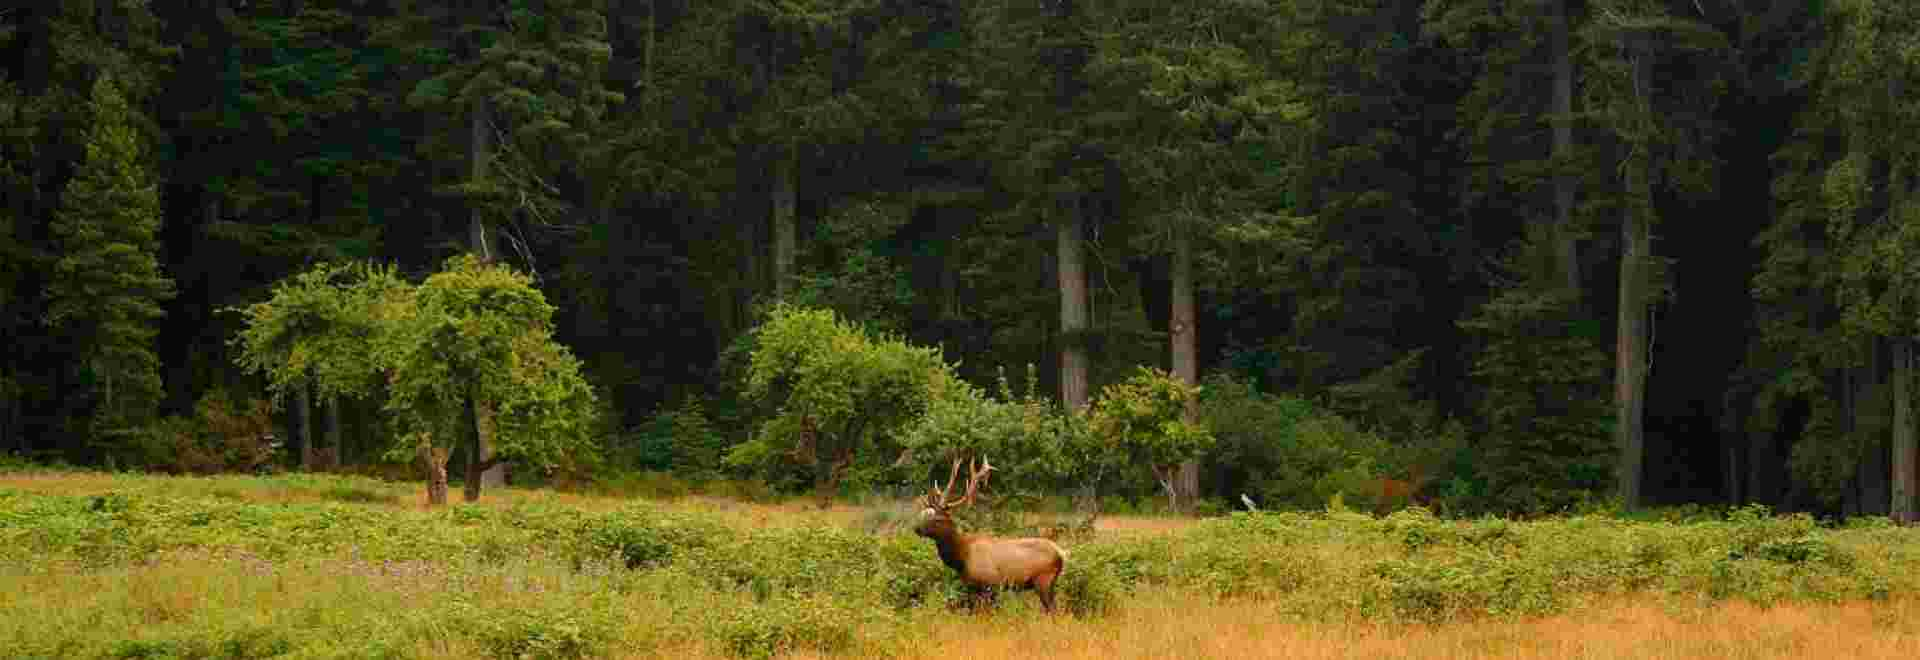 Bull Roosevelt Elk wandering in the Elk Prairie at Prairie Creek Redwoods State Park